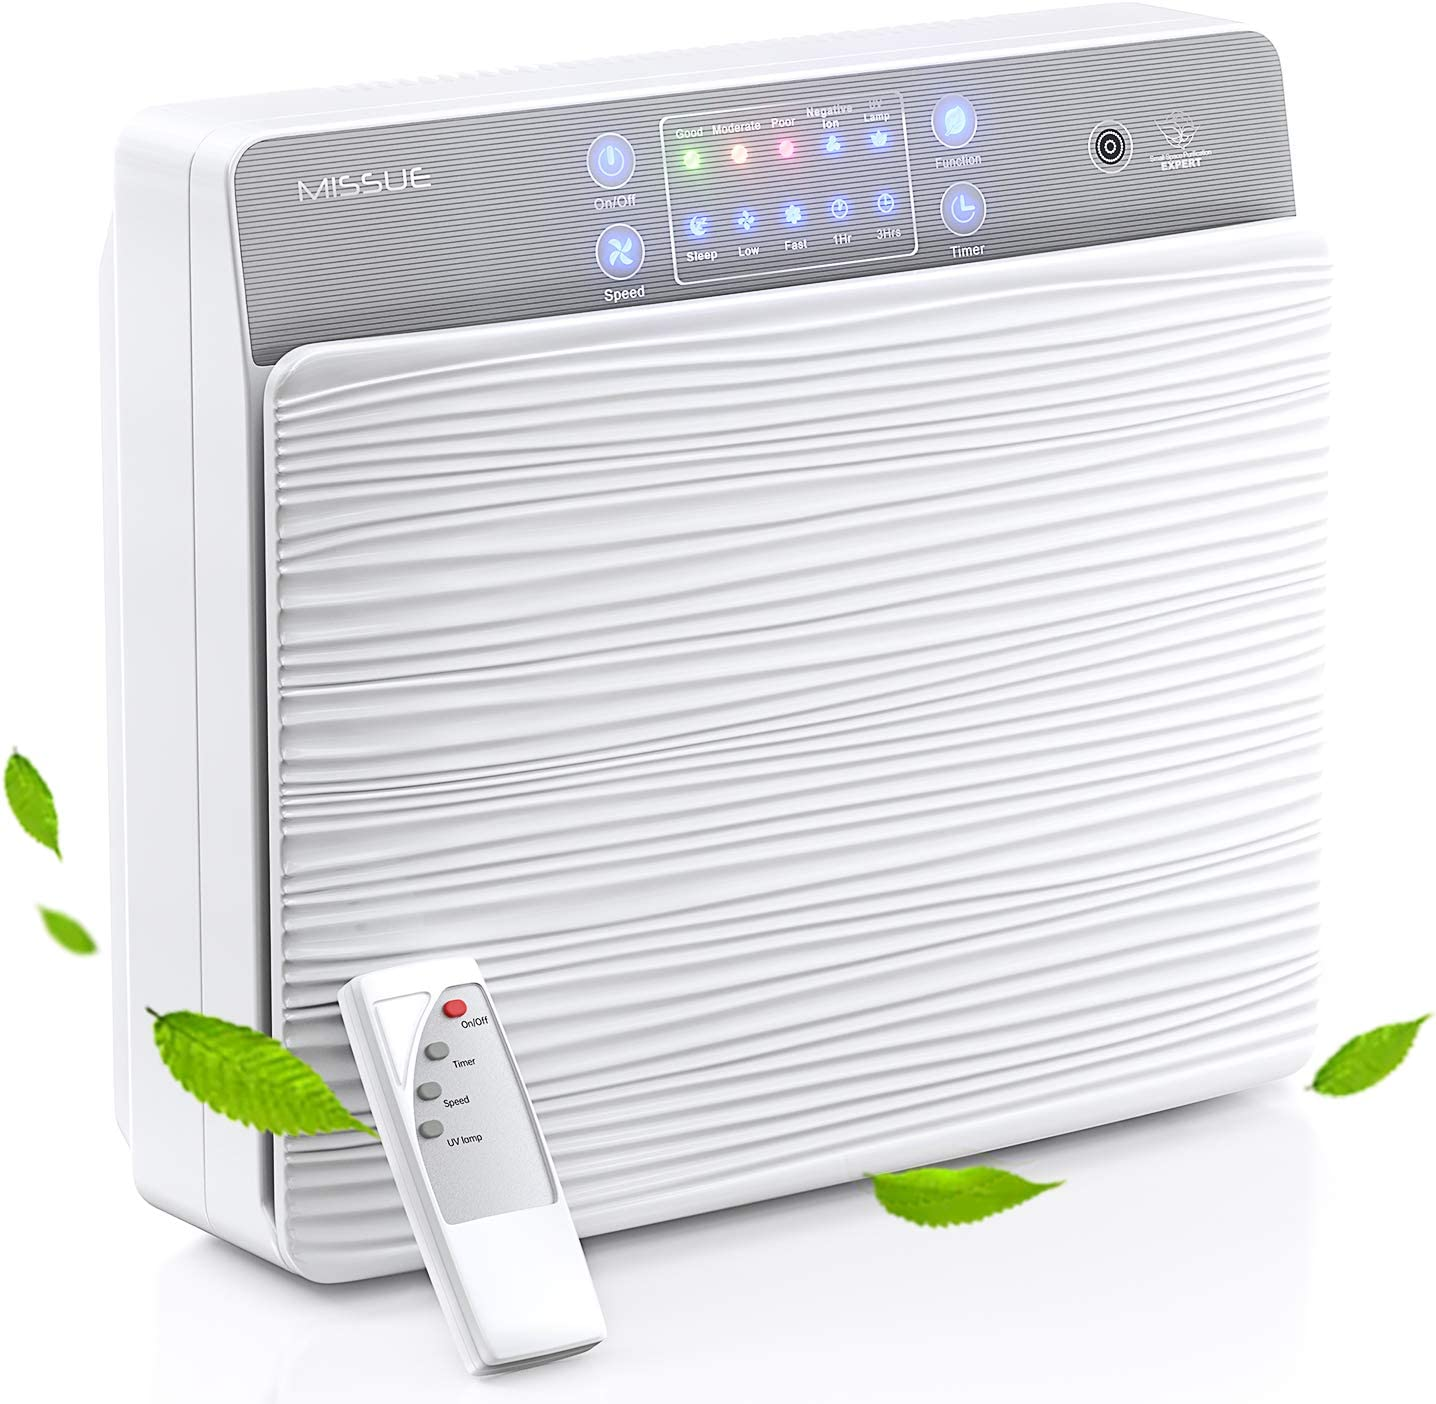 HEPA Air Purifier for Home Medium Room Bedroom, H13 HEPA Filter Smart Air Purifier with Air Quality Sensor, Sleep Mode,Timer, 7-Stage Filtration Keep The Air Truly Clearn and Fresh